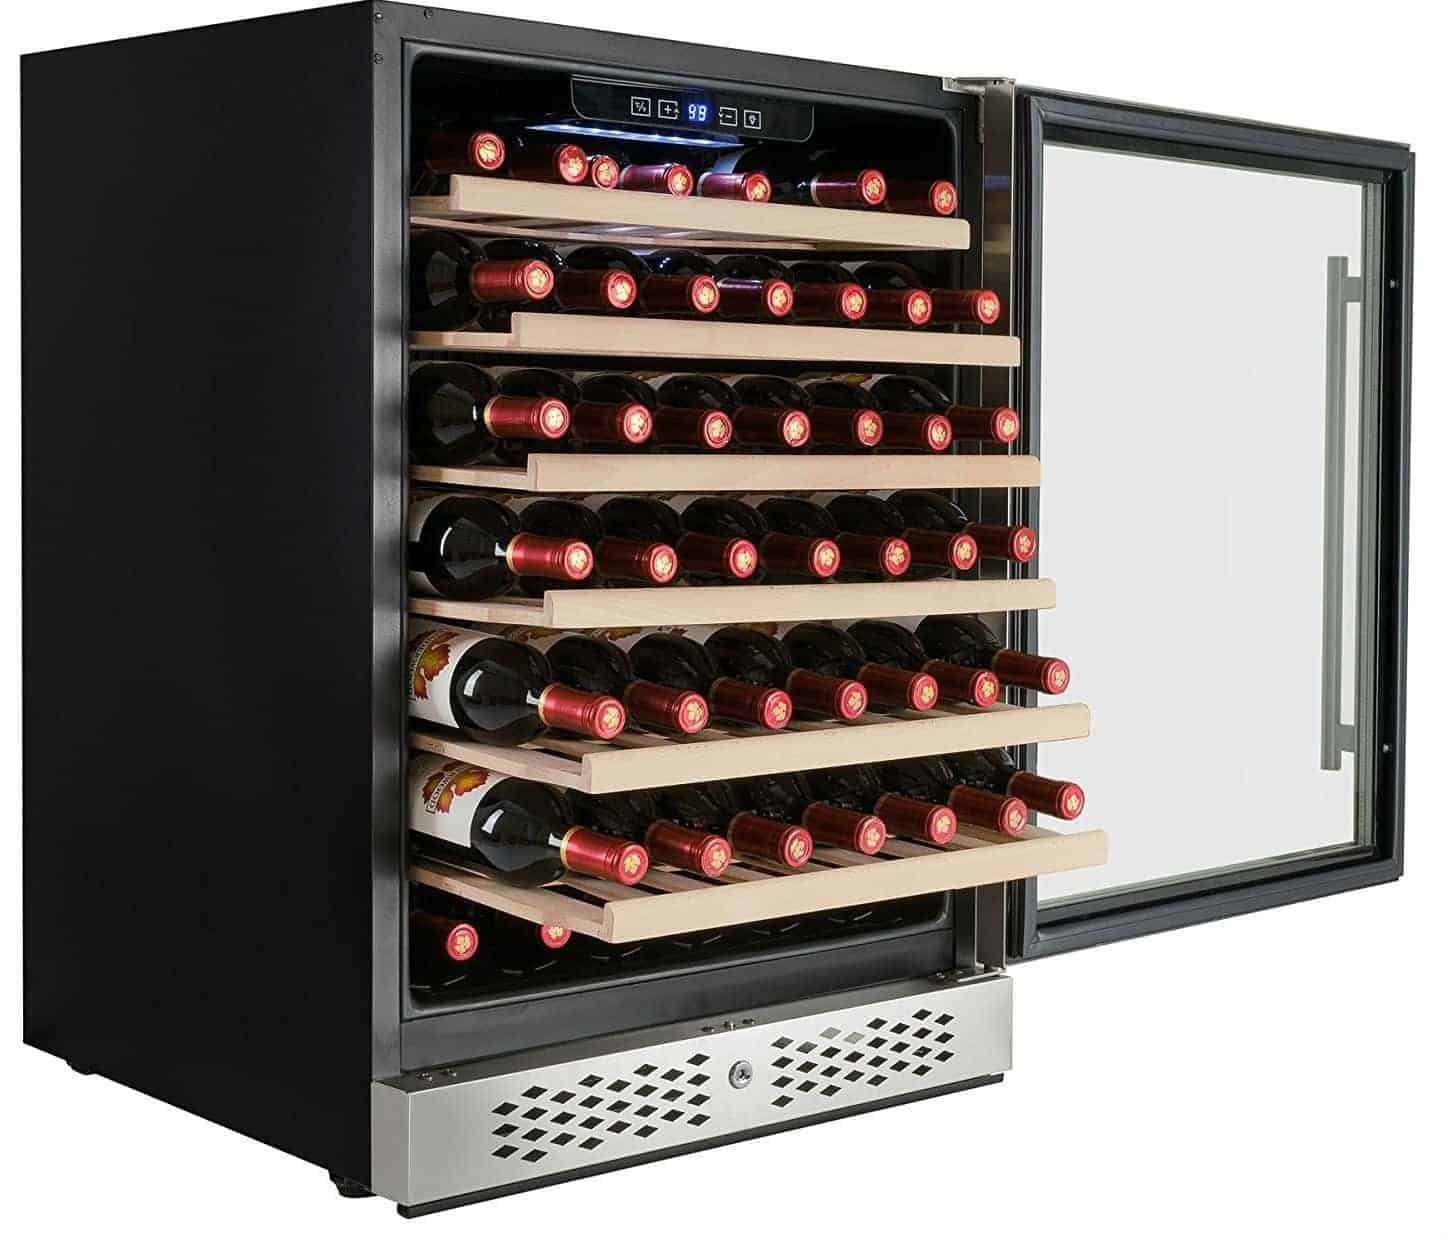 AKDY 54 Bottles Single Zone Built-in Compressor Freestanding Touch Control Panel